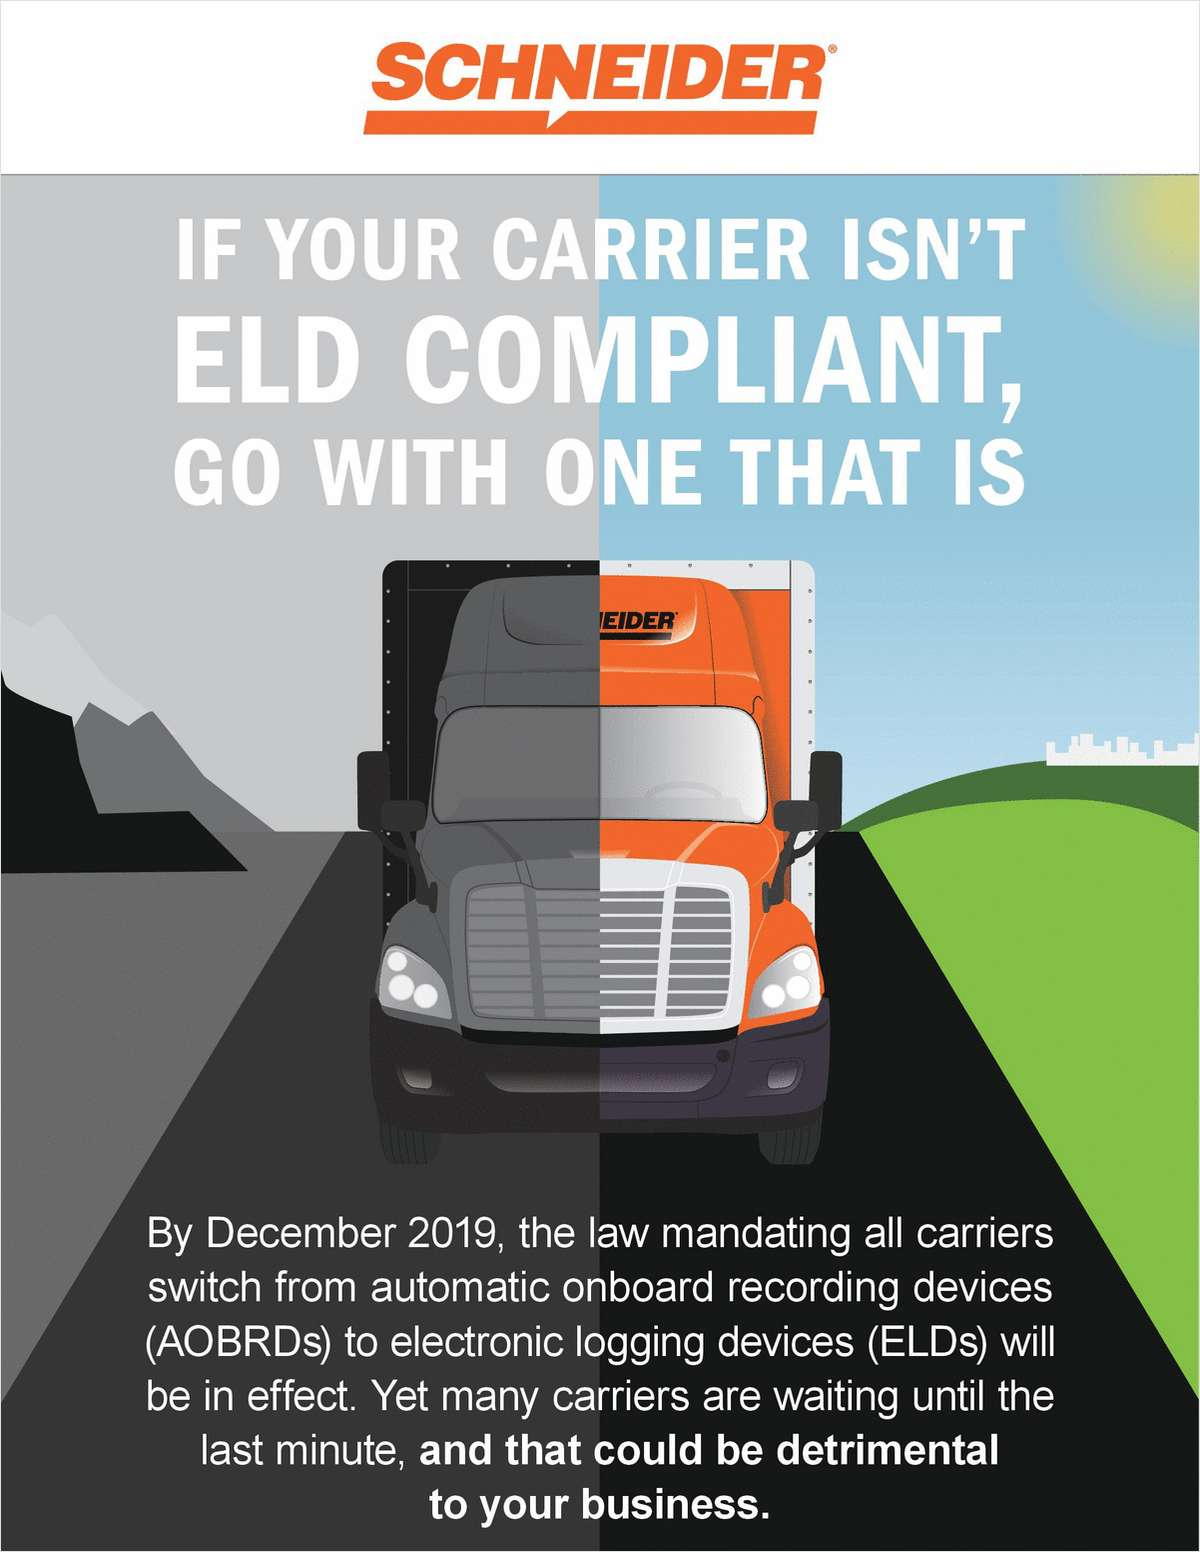 If Your Carrier Isn't ELD Compliant, Go with One That Is